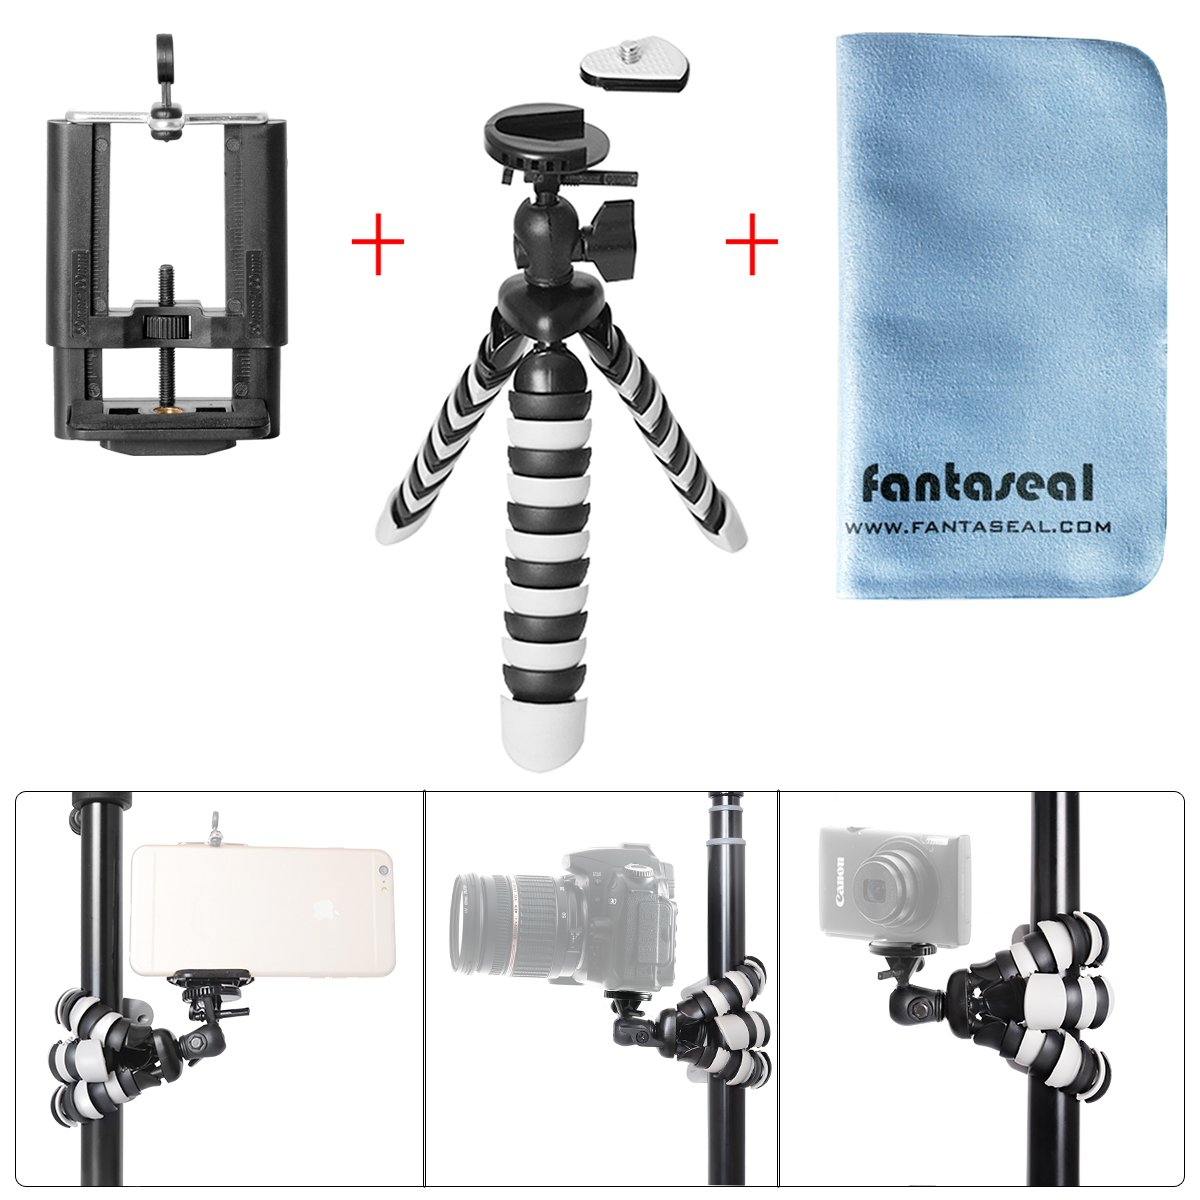 DSLR Camera + Smartphone Mini Octopus Tripod 3-in-1 Flexible Outdoor Tripod Table Desk Tripod Travel Portable Tripod Stand Holder Compatible with iPhone 7+ iPhone 7 Huawei Selfie Tripod